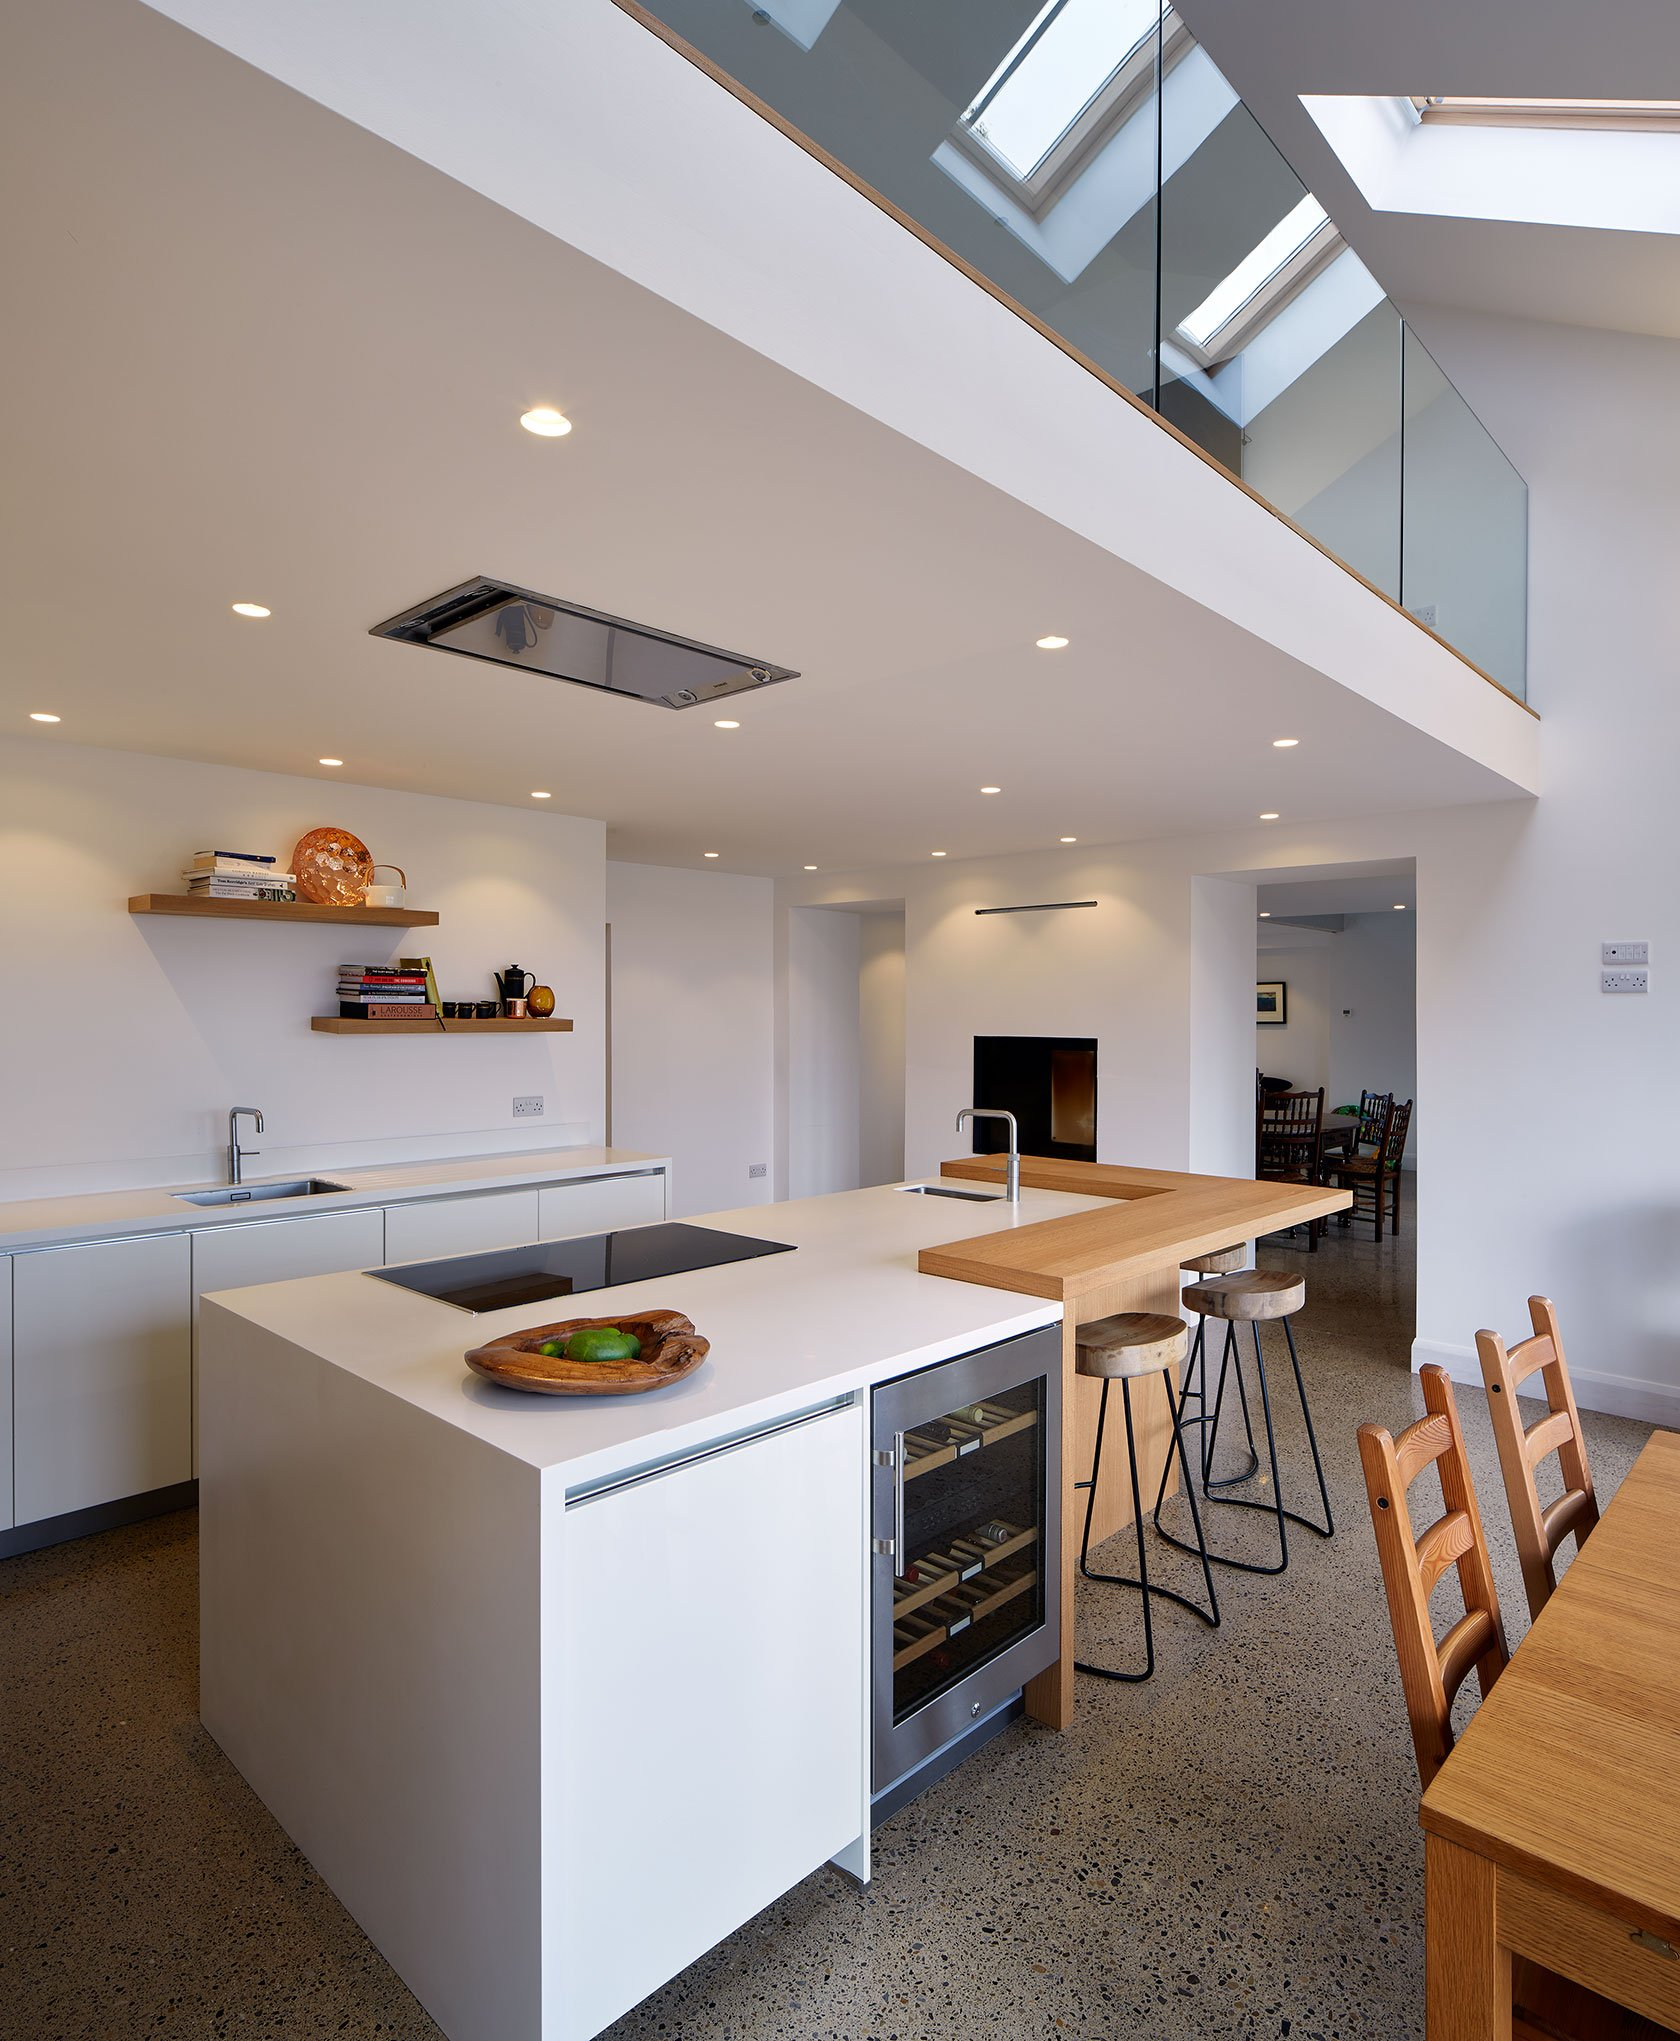 Four Seasons Kitchen Design Leeds